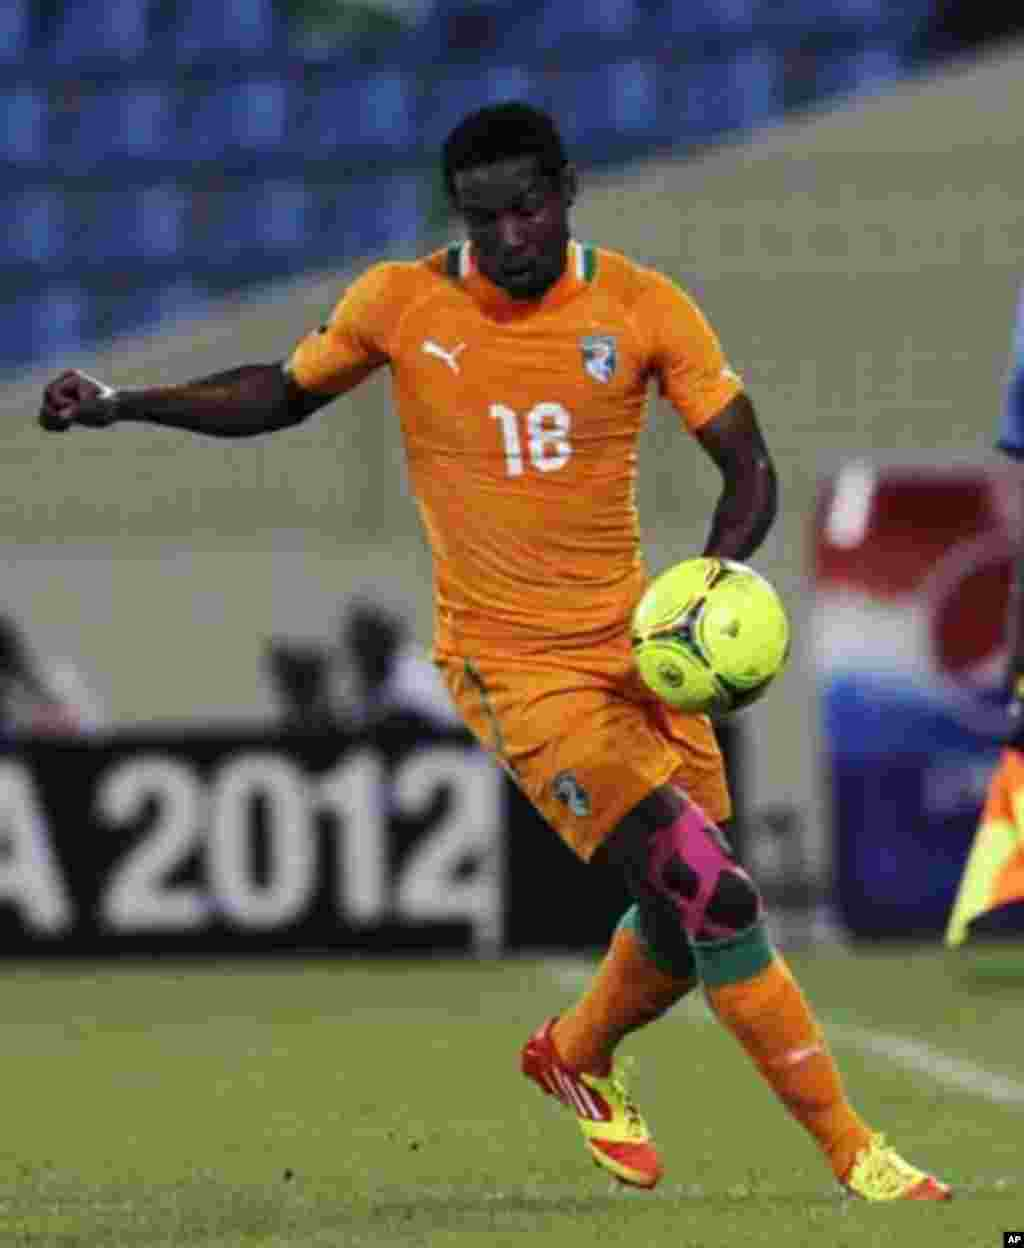 Abdul Kader Keita of Ivory Coast controls the ball during their African Nations Cup soccer match against Angola, in Malabo January 30, 2012.